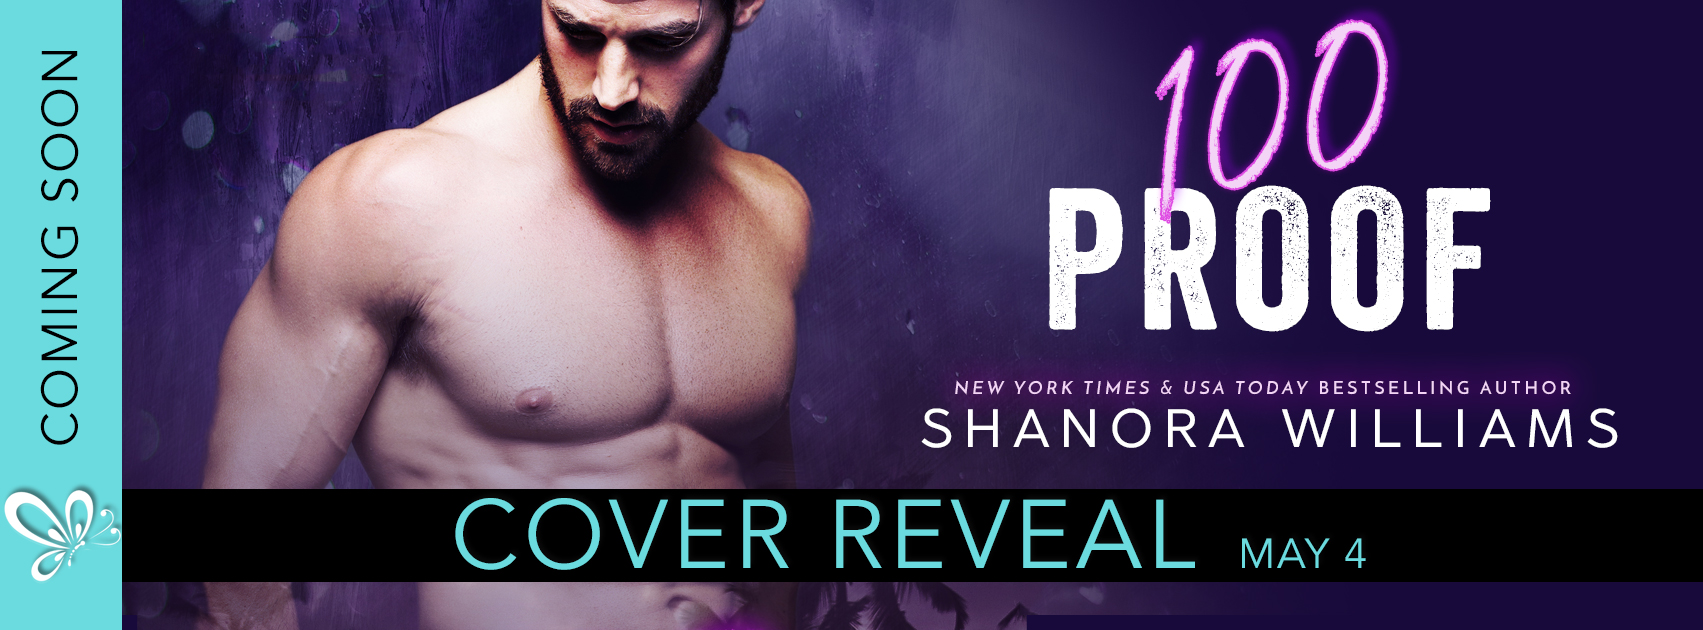 Cover Reveal: 100 Proof by Shanora Williams